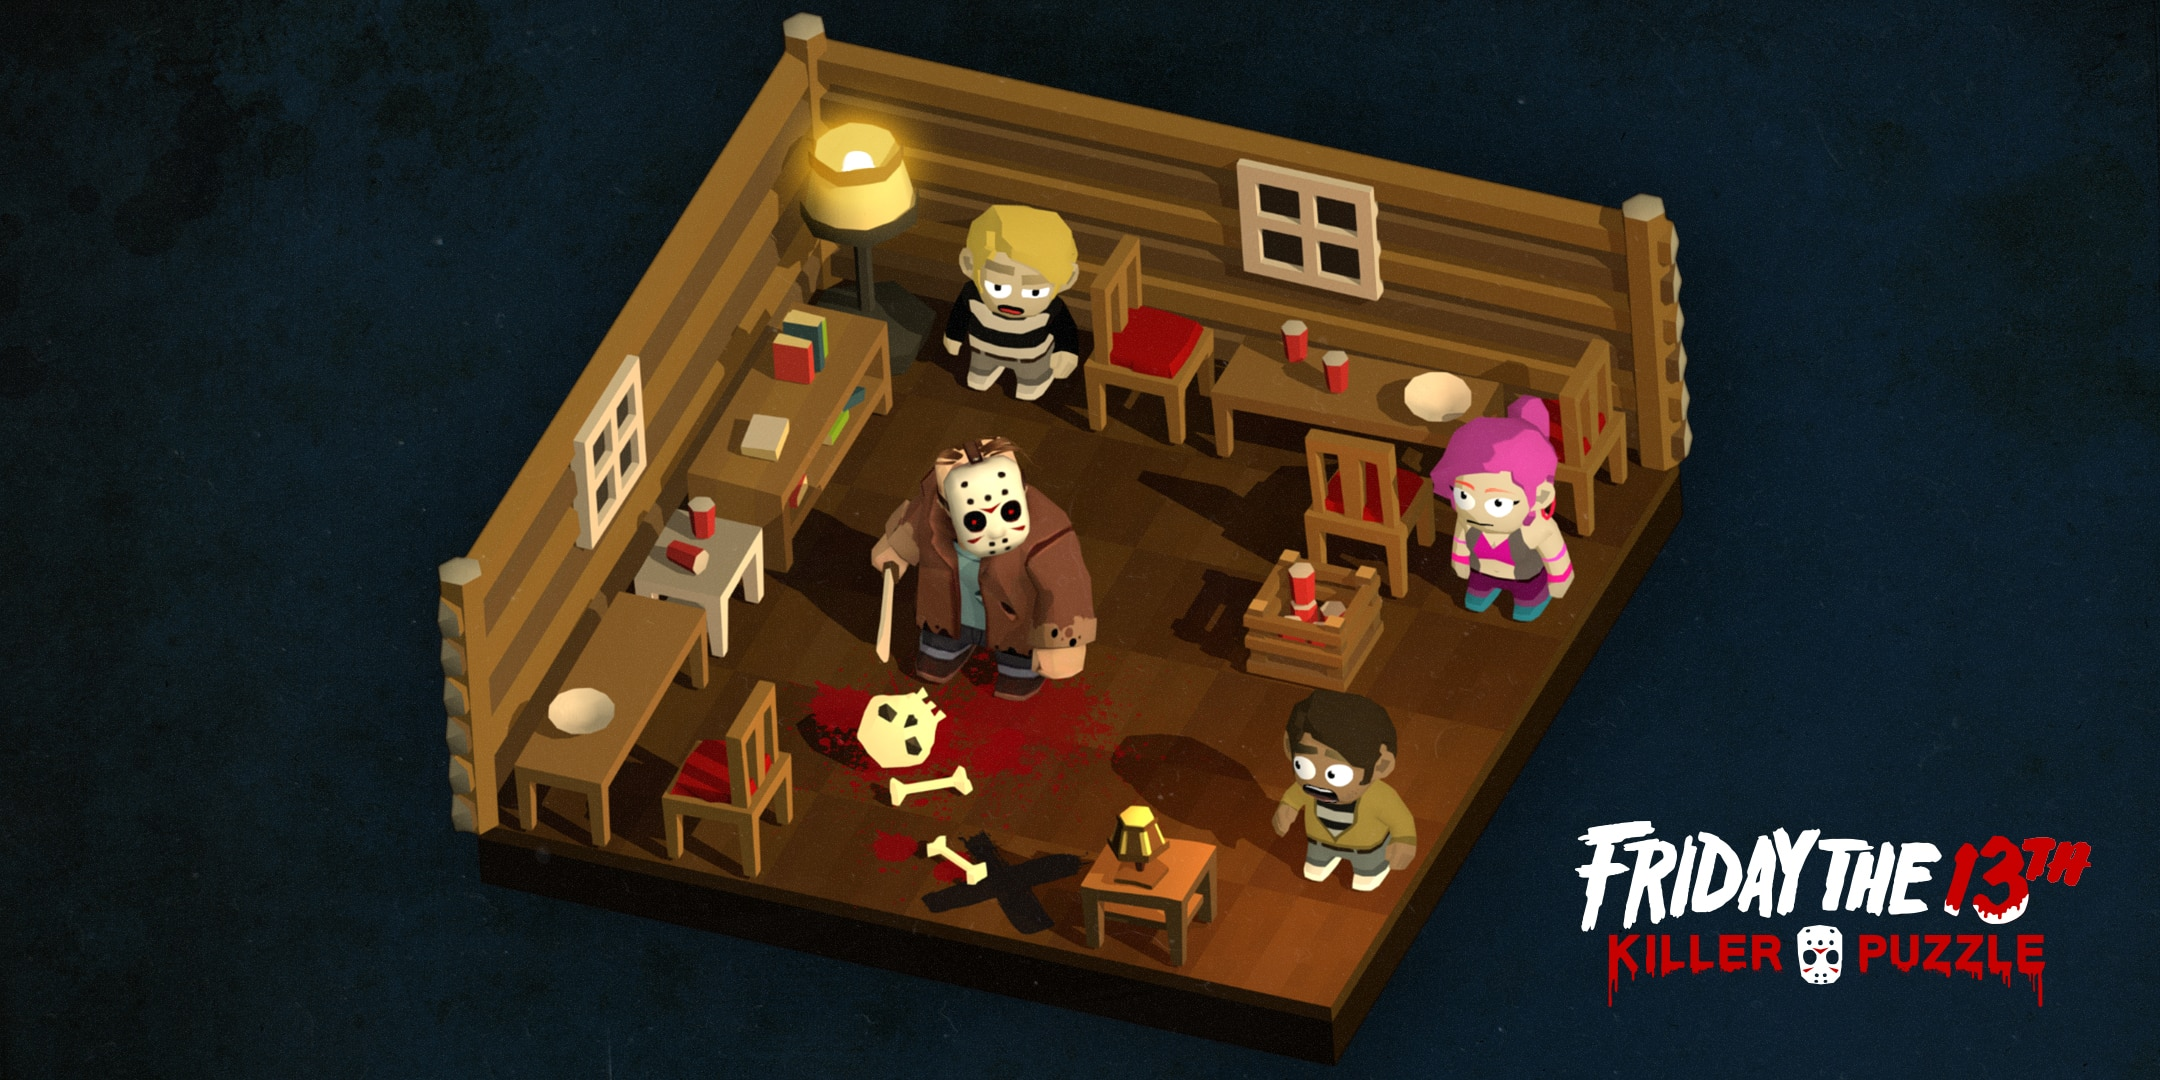 friday the 13th killer puzzle 6 - Friday the 13th: Killer Puzzle Coming from Slayaway Camp Creators; Exclusive: Developer Jason Kapalka Speaks!